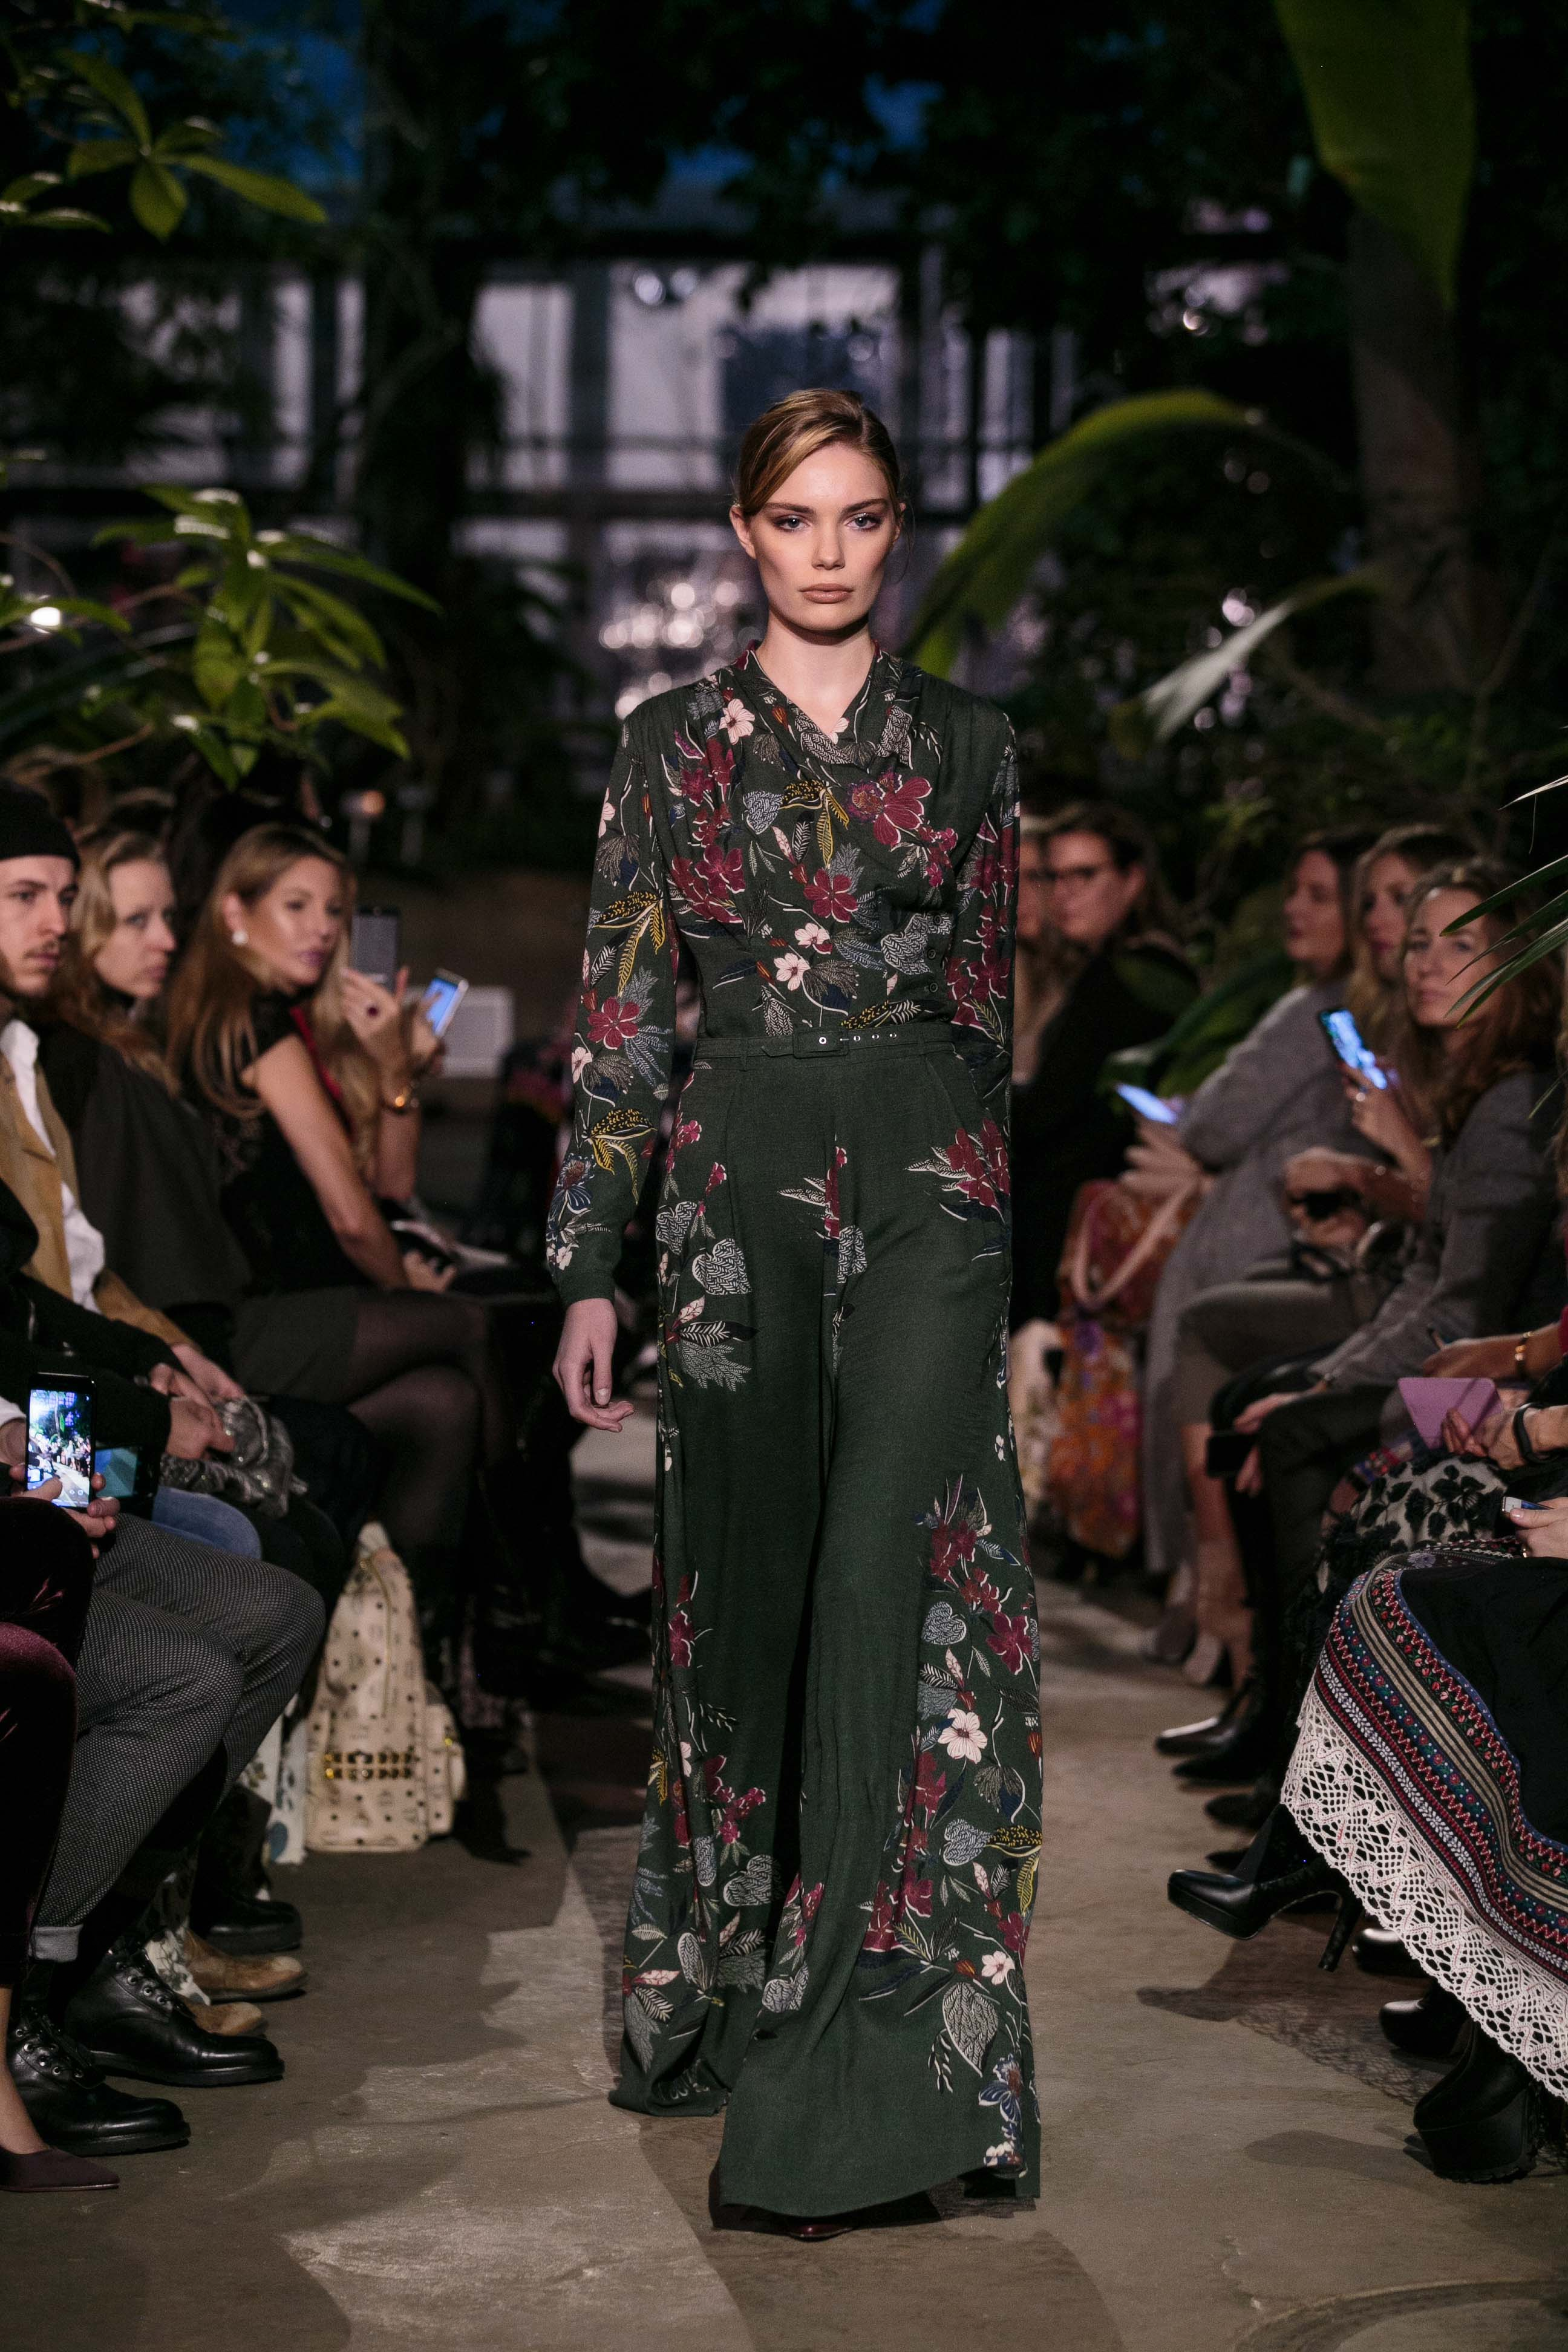 Herbst winter Trends 2018 Floral Prints Modeblog Lena Hoschek RUNWAY AUTUMN WINTER 2018 2019 WINTERGARDEN